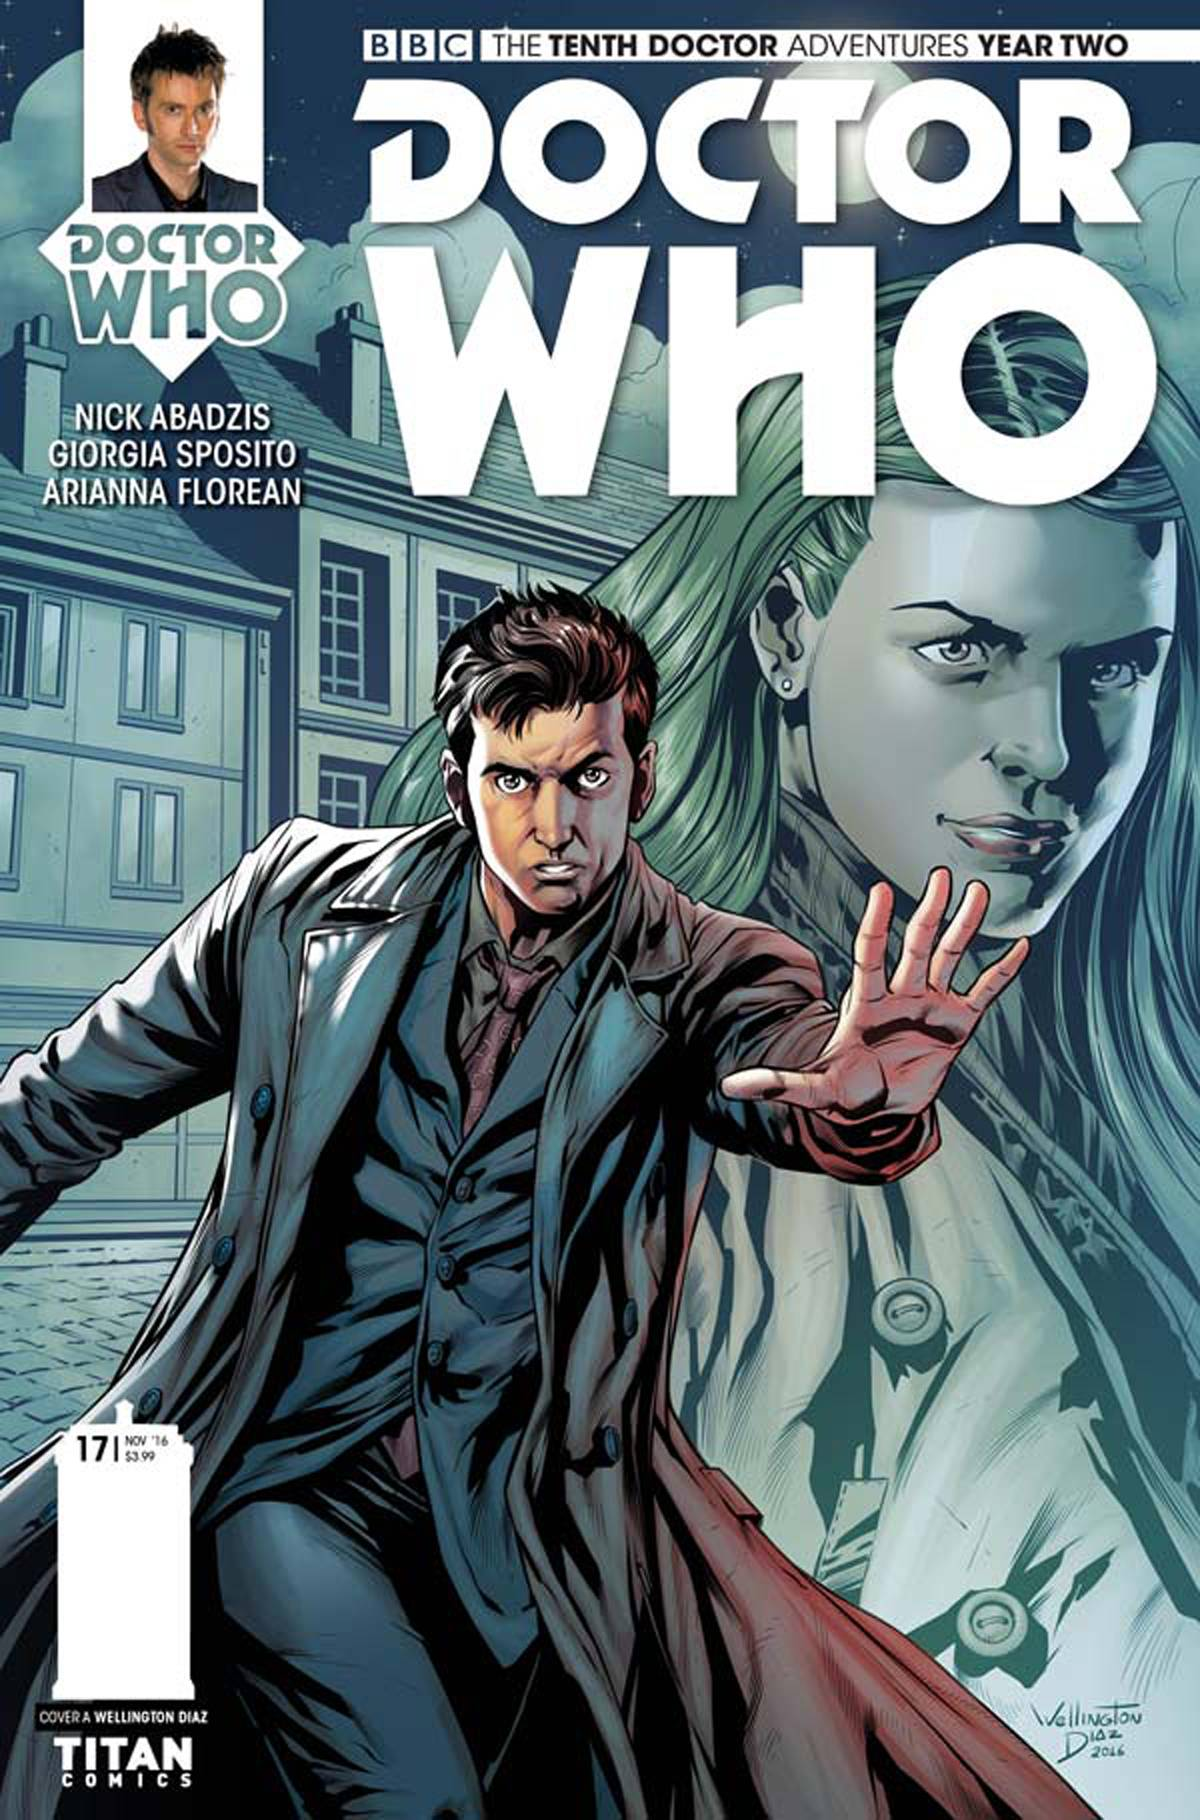 DOCTOR WHO 10TH YEAR TWO #17 CVR A DIAZ